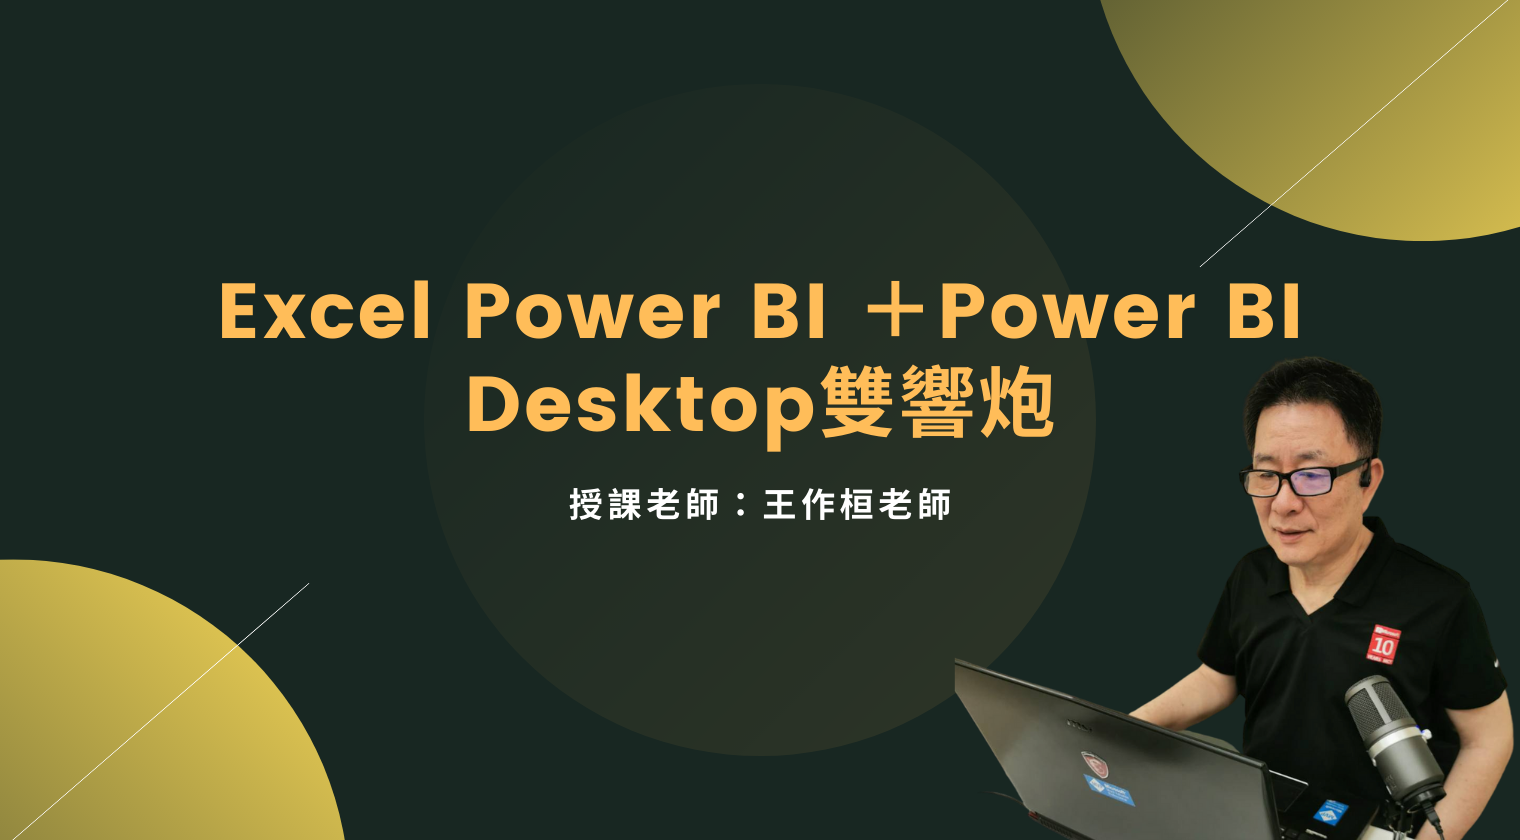 Excel Power BI +Power BI Desktop雙響炮 - MasterTalks 內容電力公司